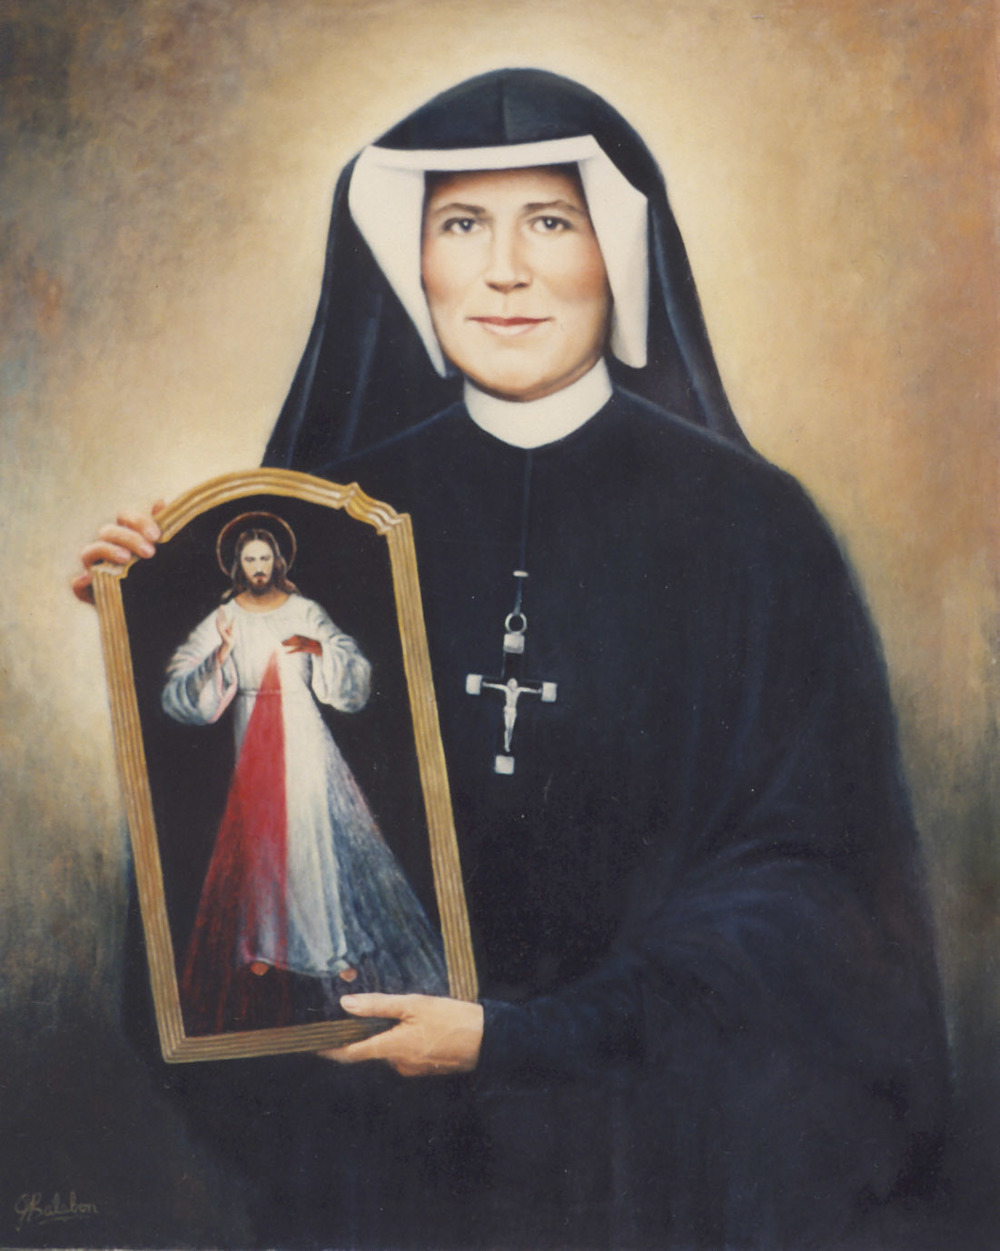 St. Faustina and the Divine Mercy message